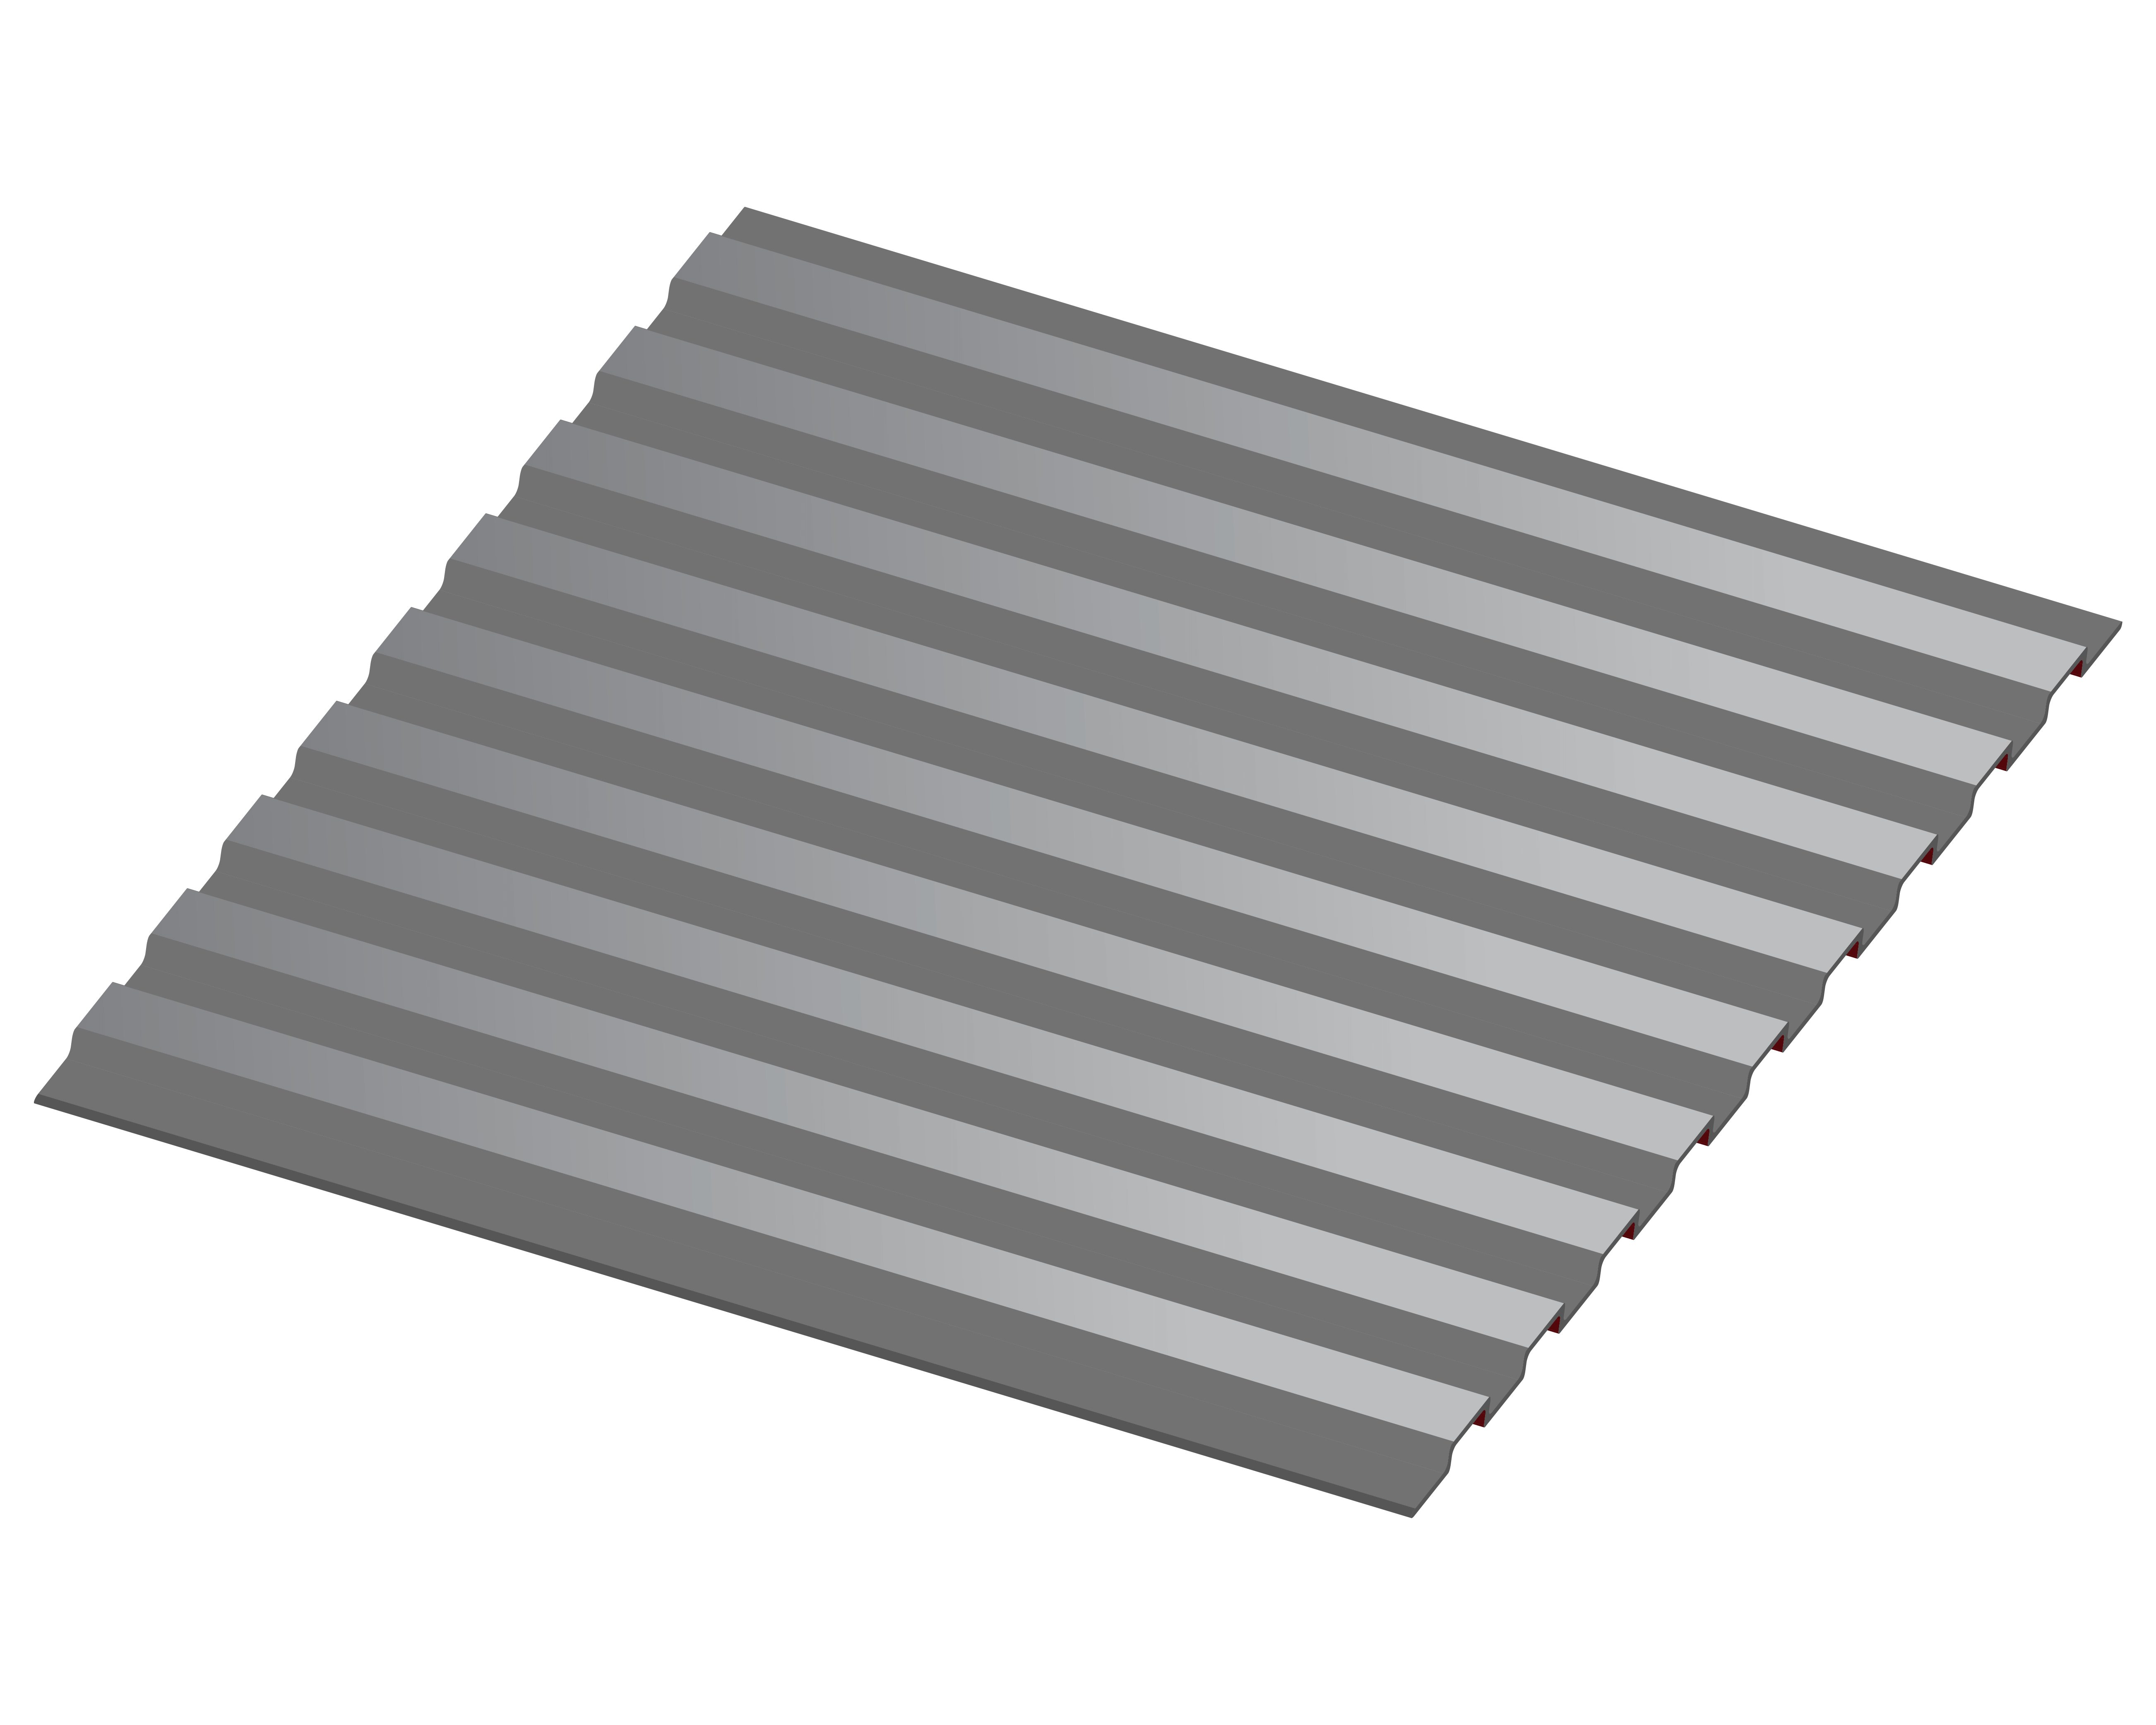 3D Roof for Commercial Roofing